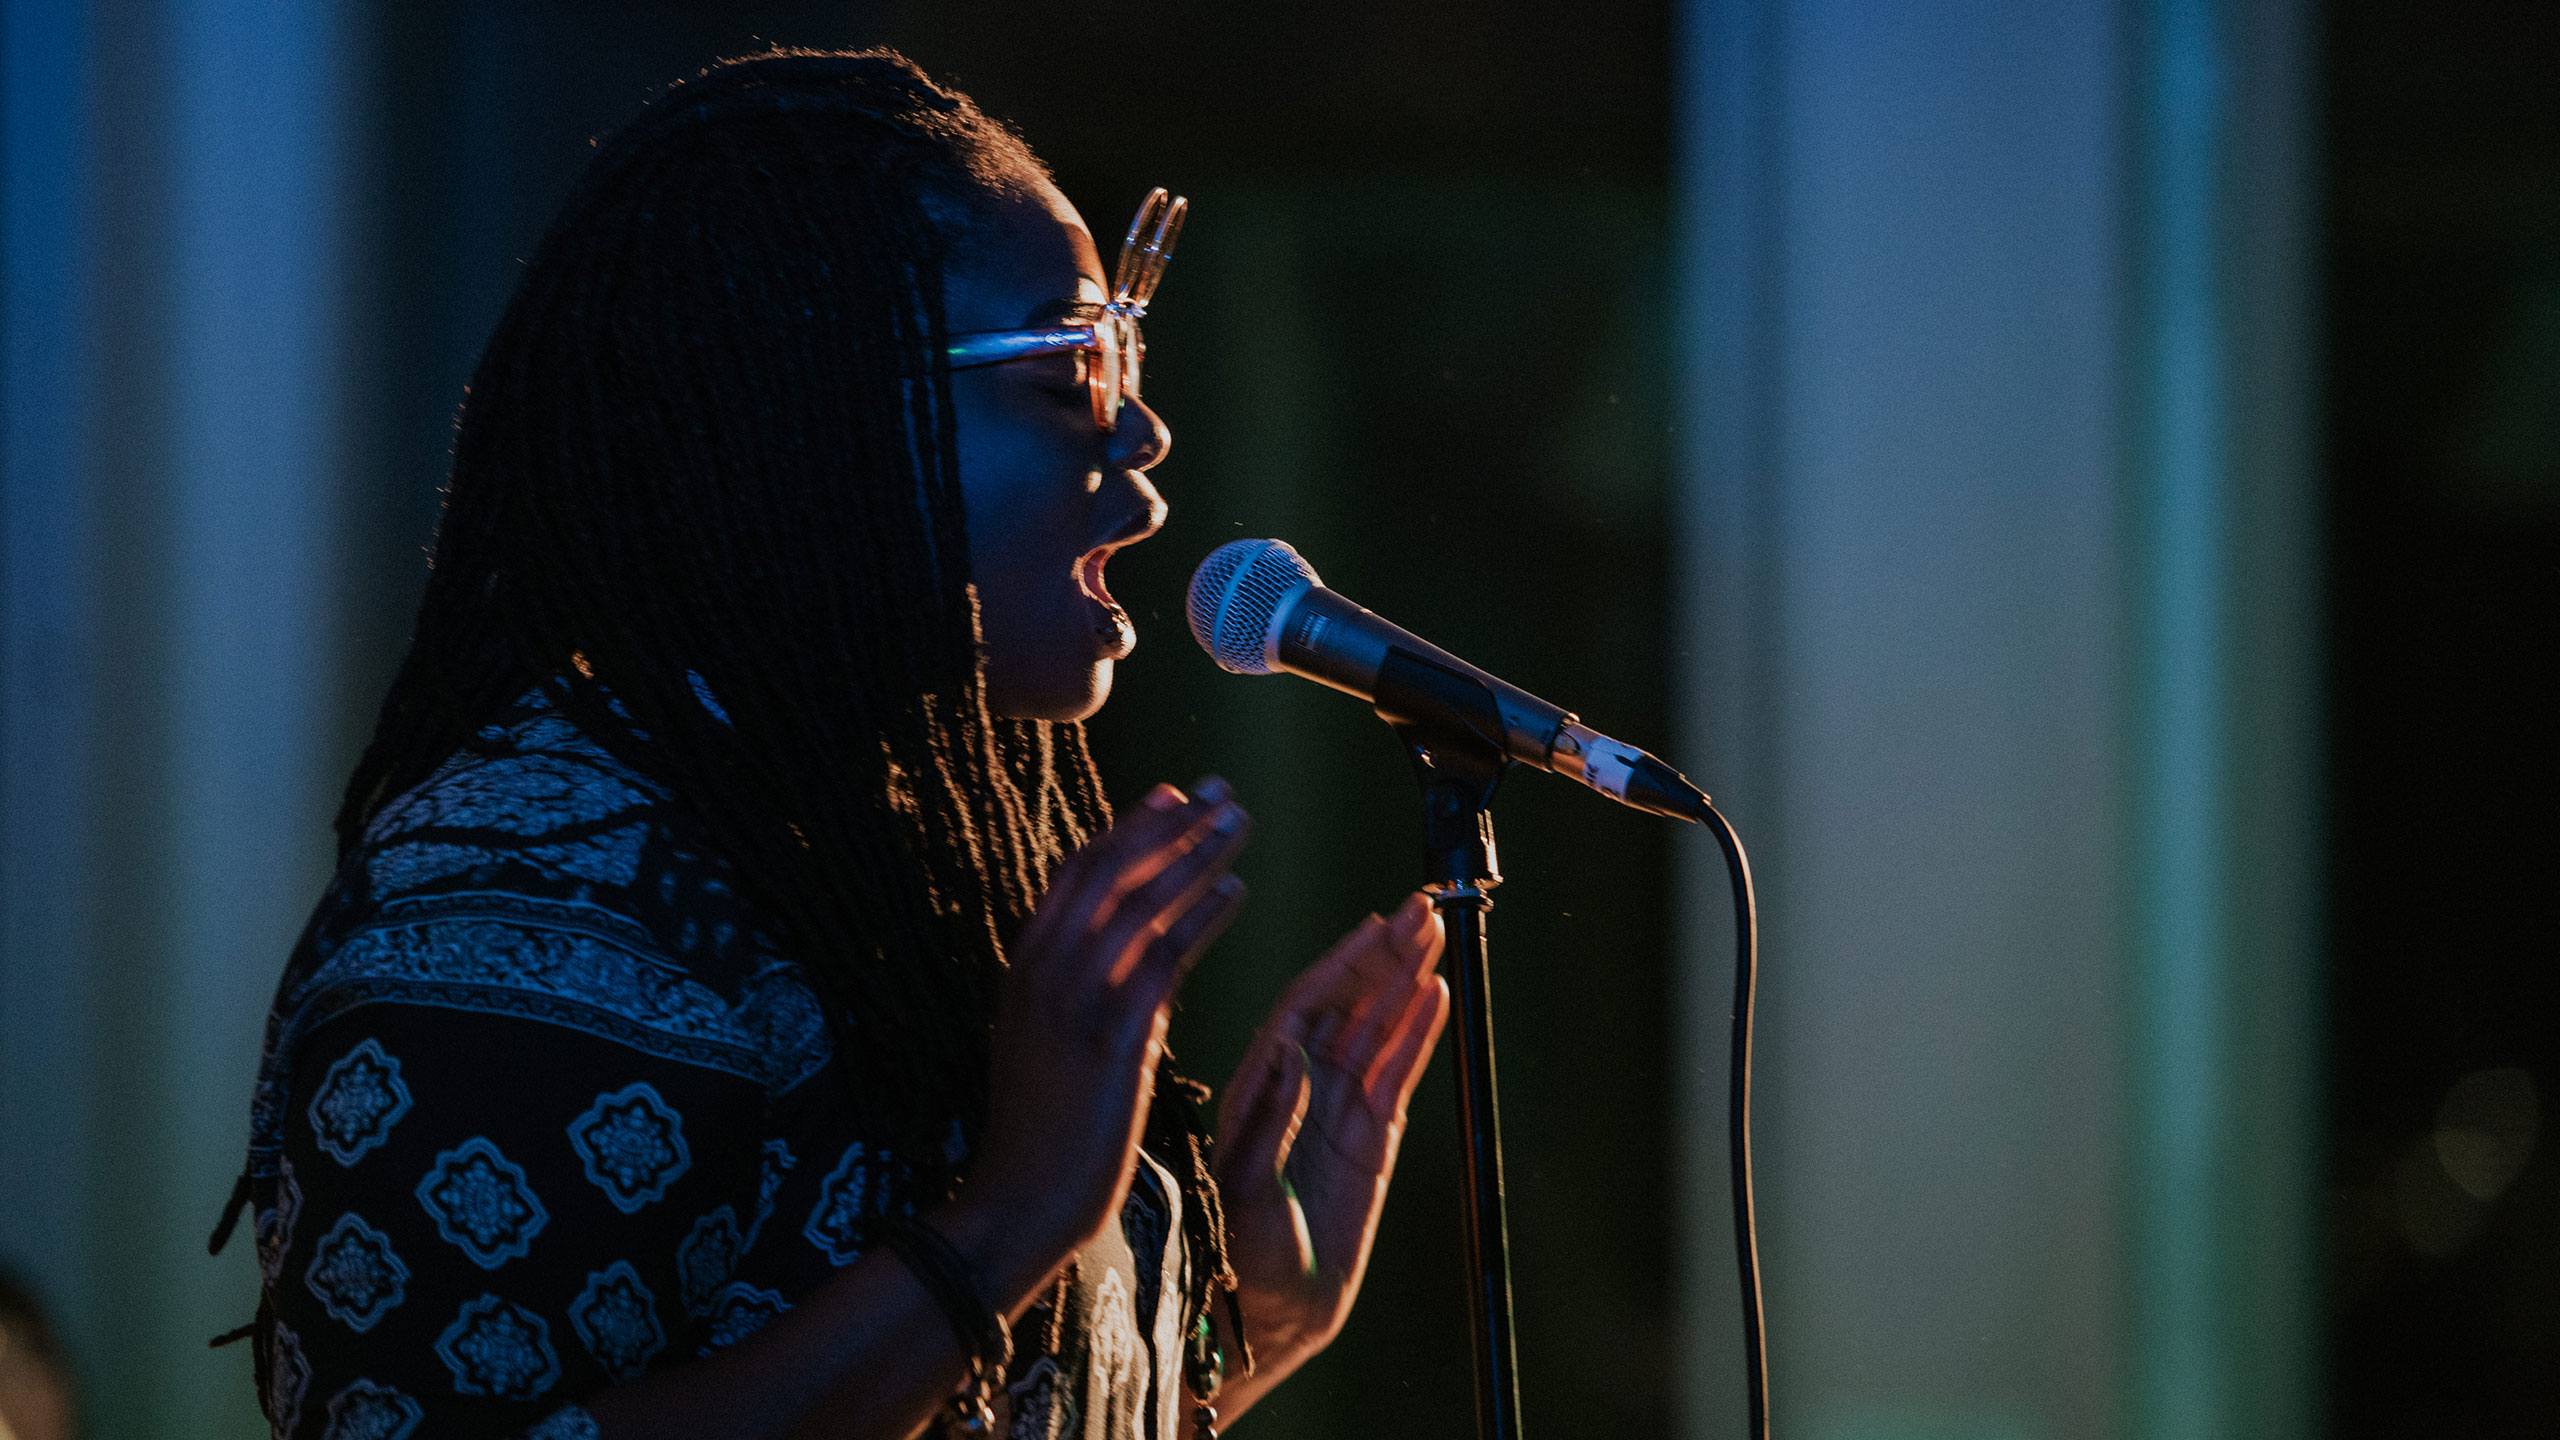 Speech Debelle wearing a patterned shirt and glasses sings and raises her hands to shoulder height at PRS for Music Presents